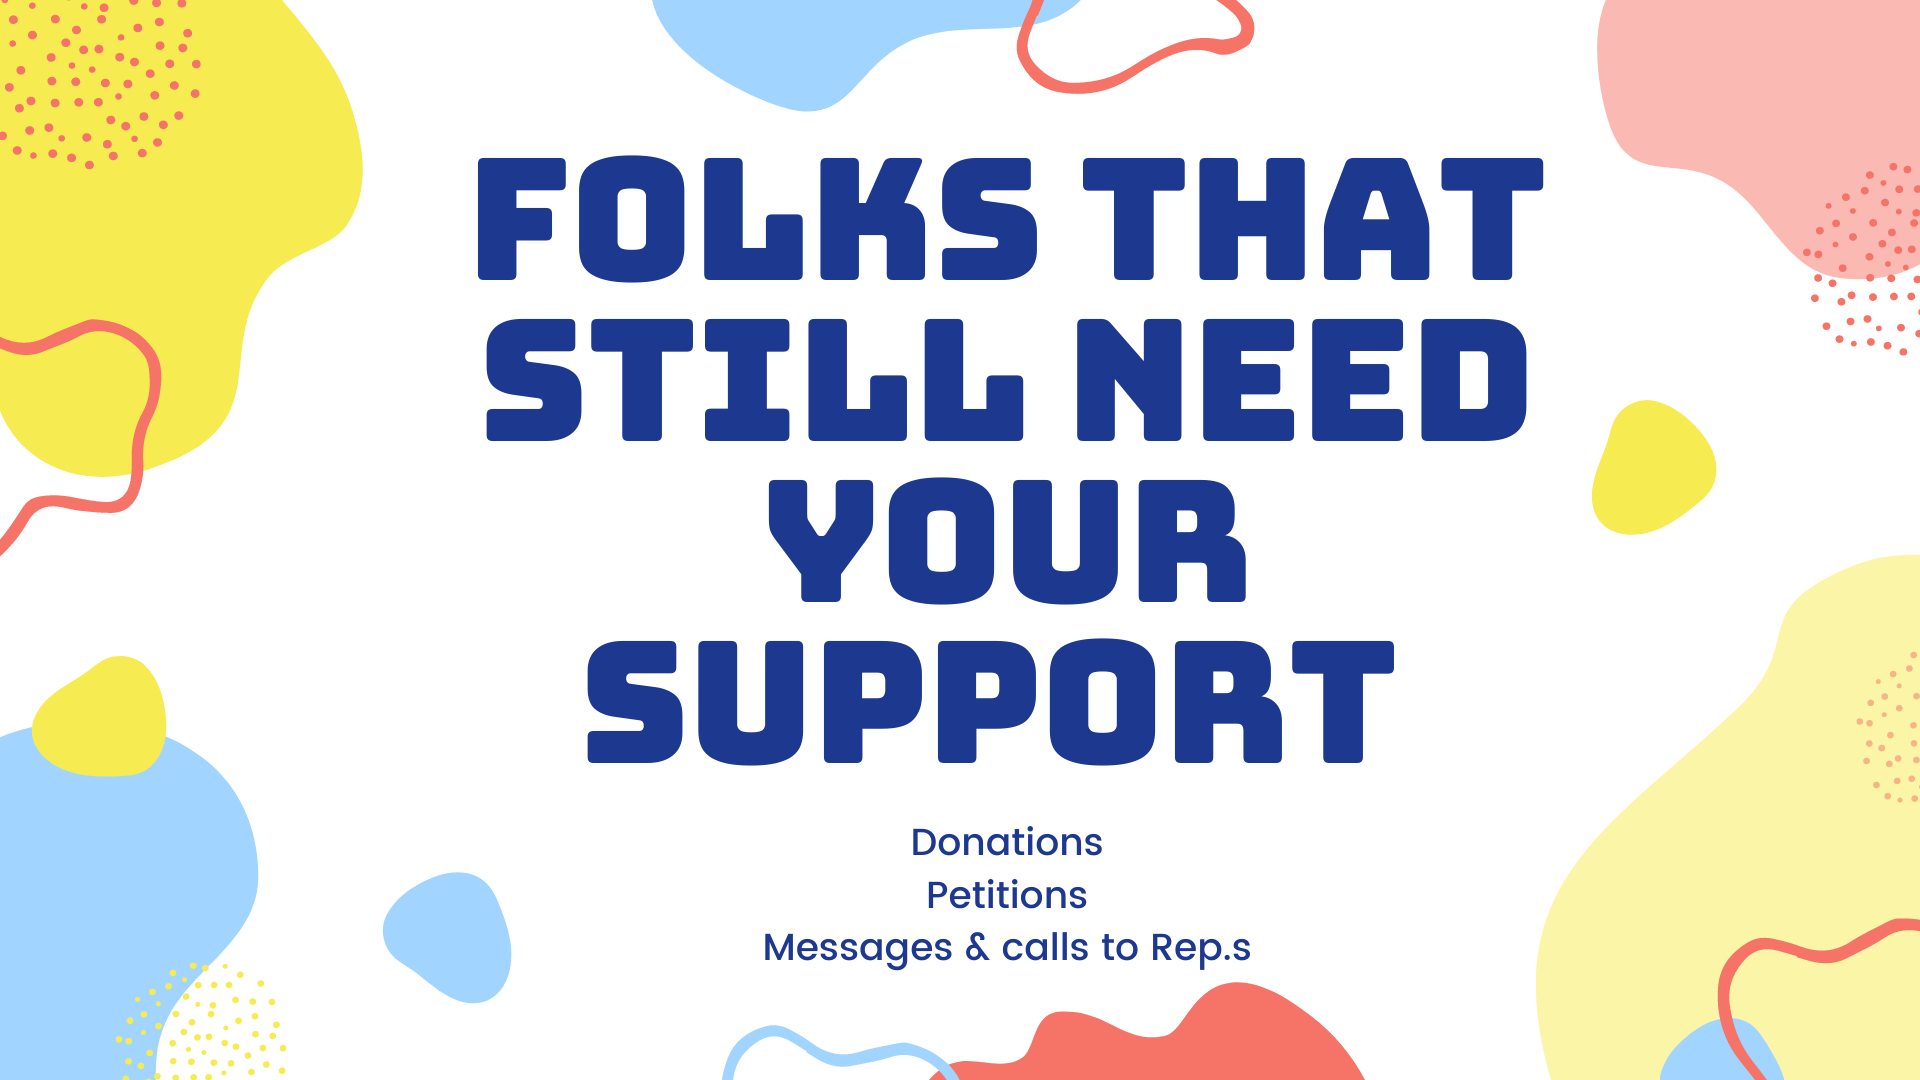 Folks that still need your support (Donations, petitions, messages & calls to reps)